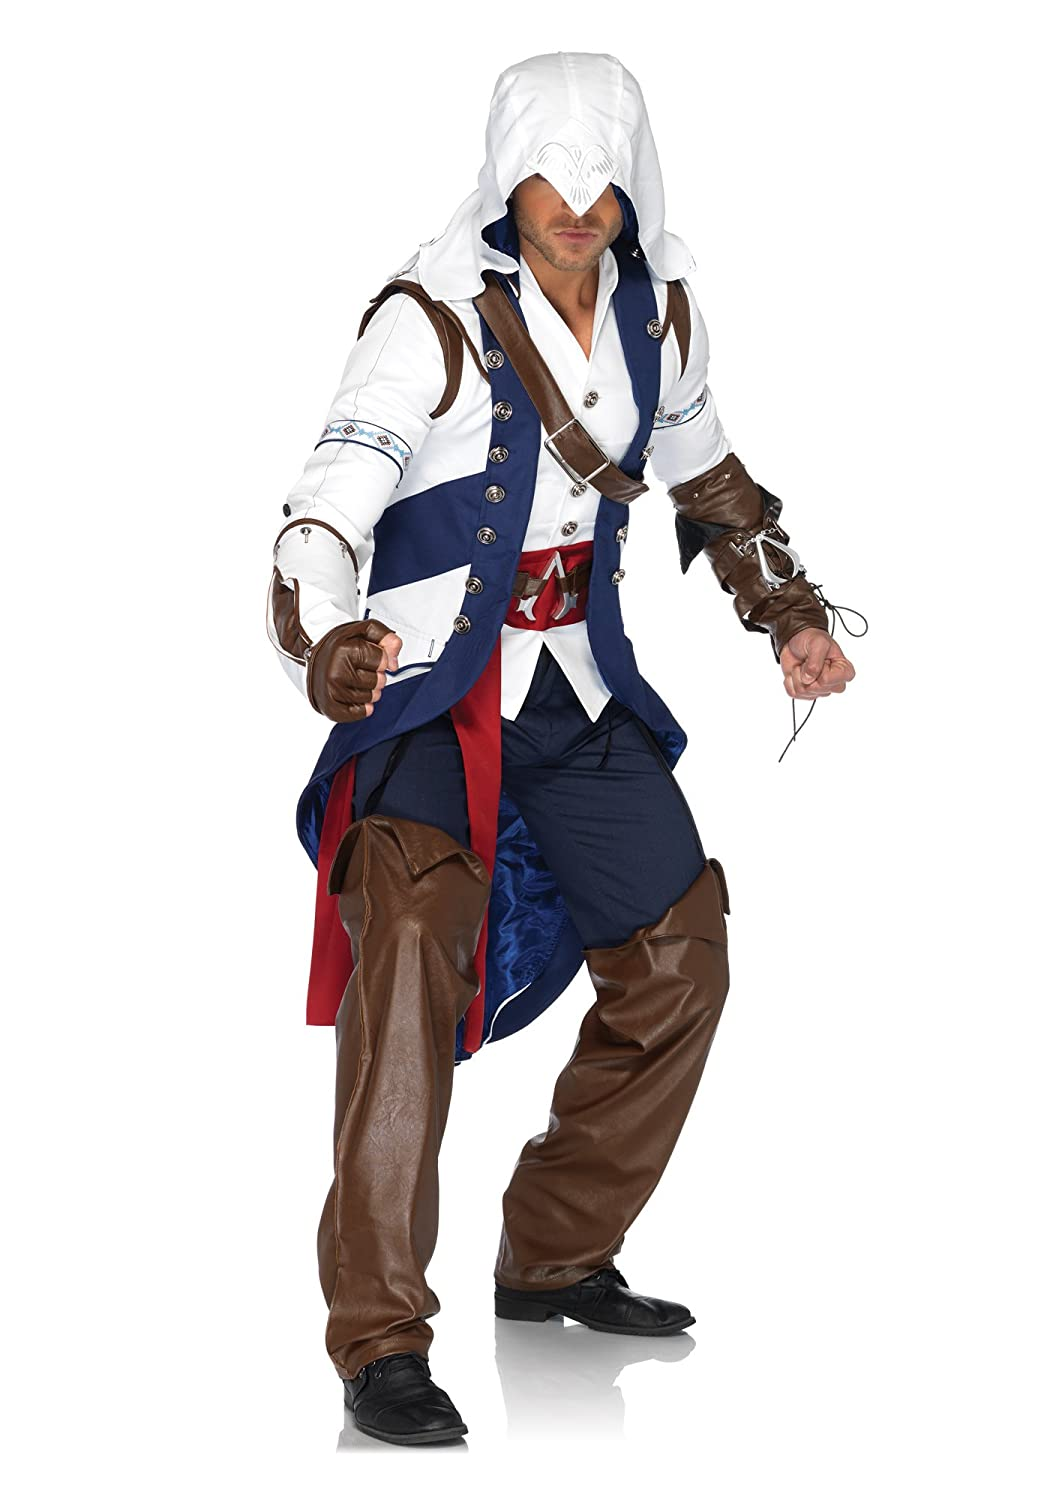 Deluxe Adult Costumes - Men's Assassin's Creed Connor deluxe 5-piece cosplay costume set.